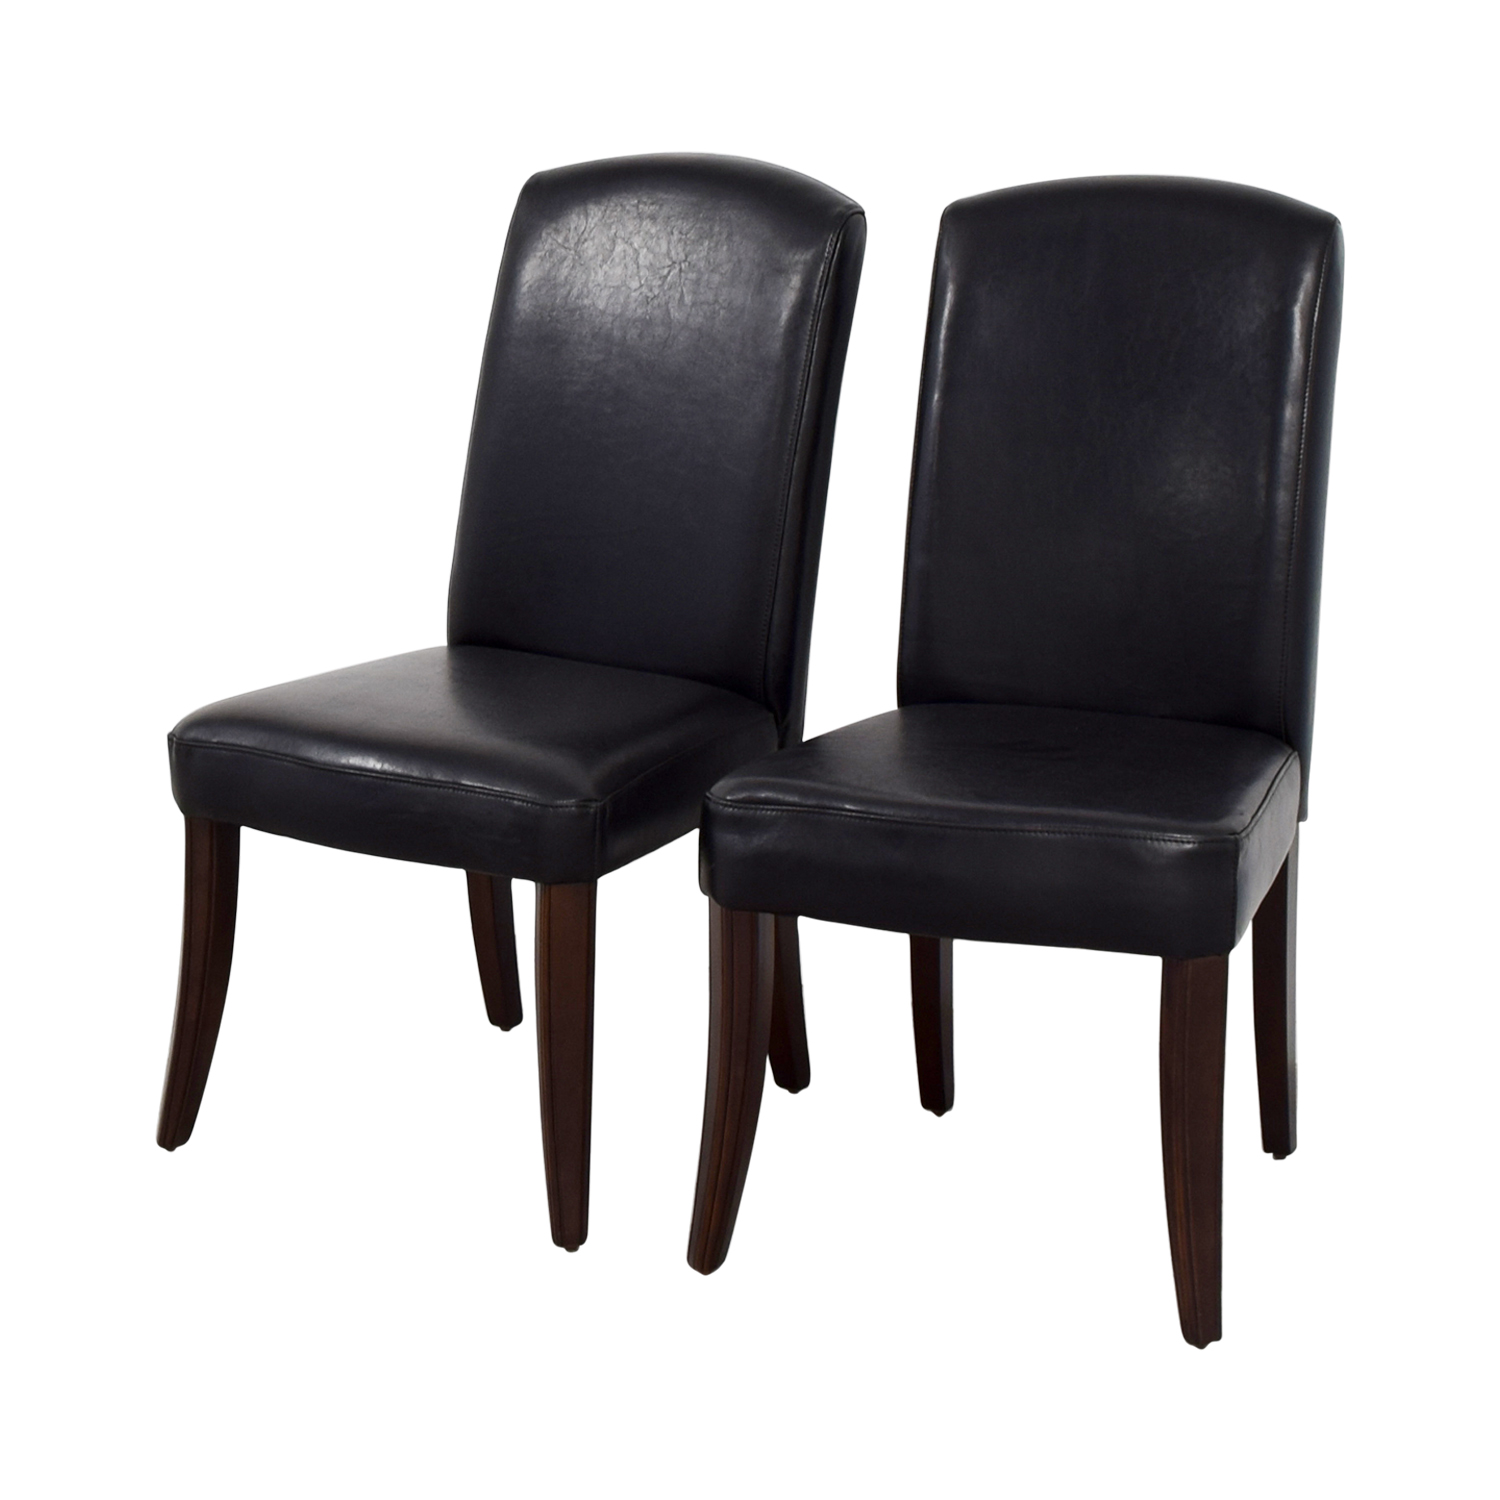 Black Padded Leatherette High Back Chairs nyc